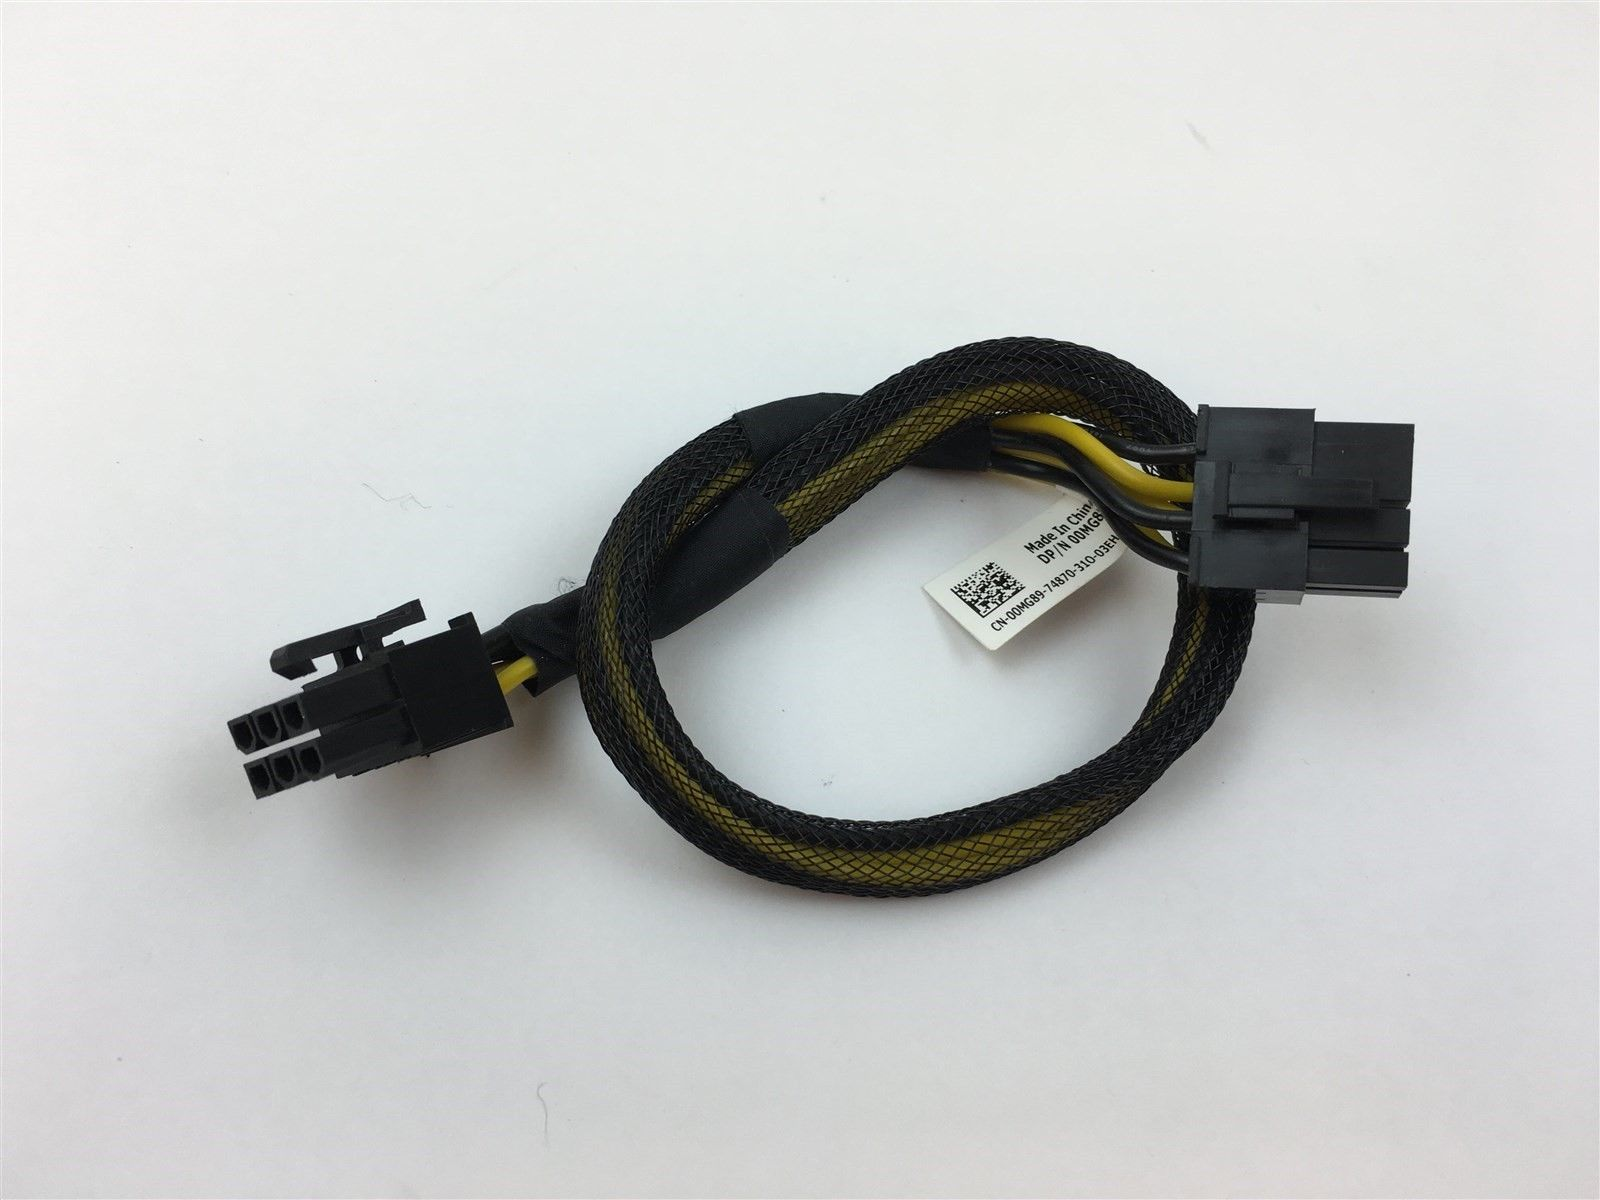 Dell Precision T3600 T5600 VGA1 Power Cable 0MG89 00MG89